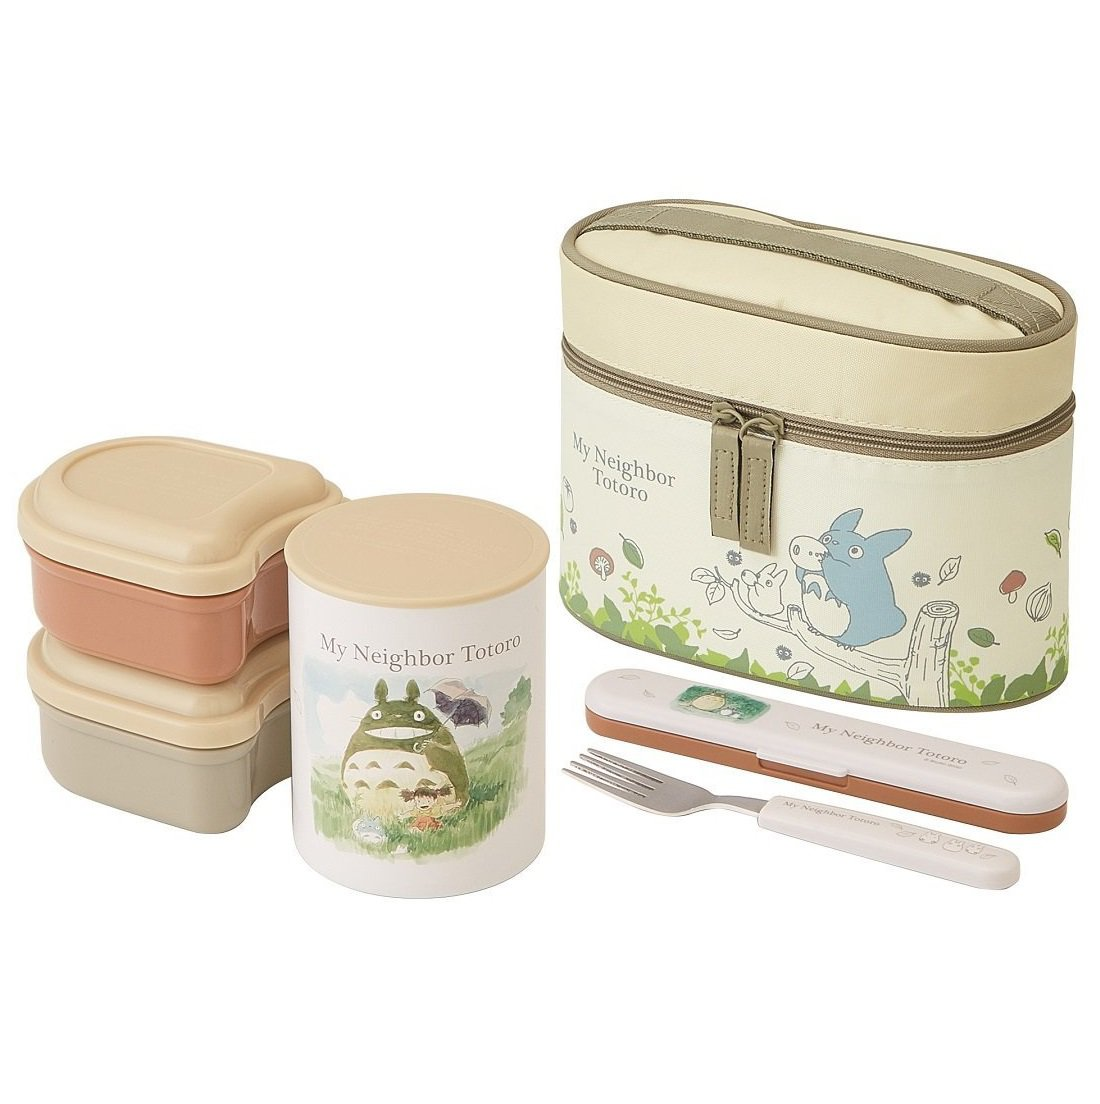 Stainless Steel Lunch Bento Box 560ml - Jar 2 Containers Fork in Case Thermal Case - Totoro 2017